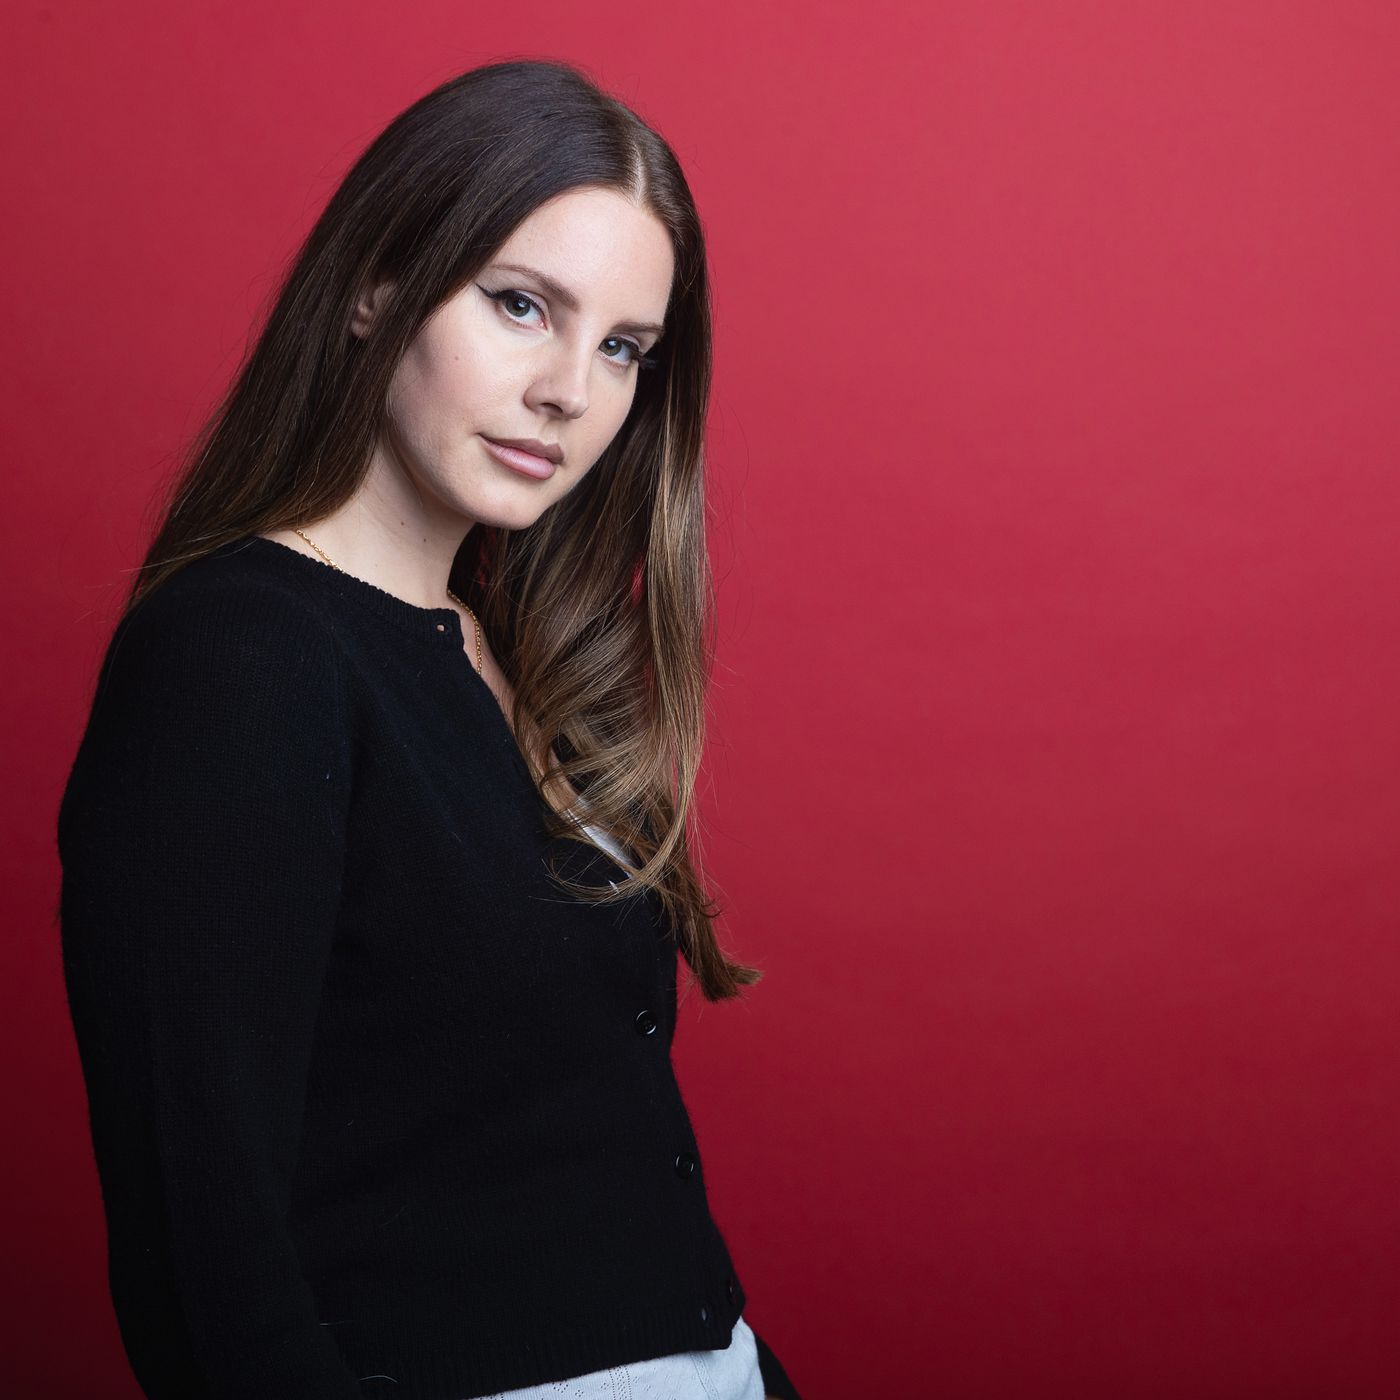 Lana Del Rey S Career Explains A Shift In How We Think About Pop Stars Vox